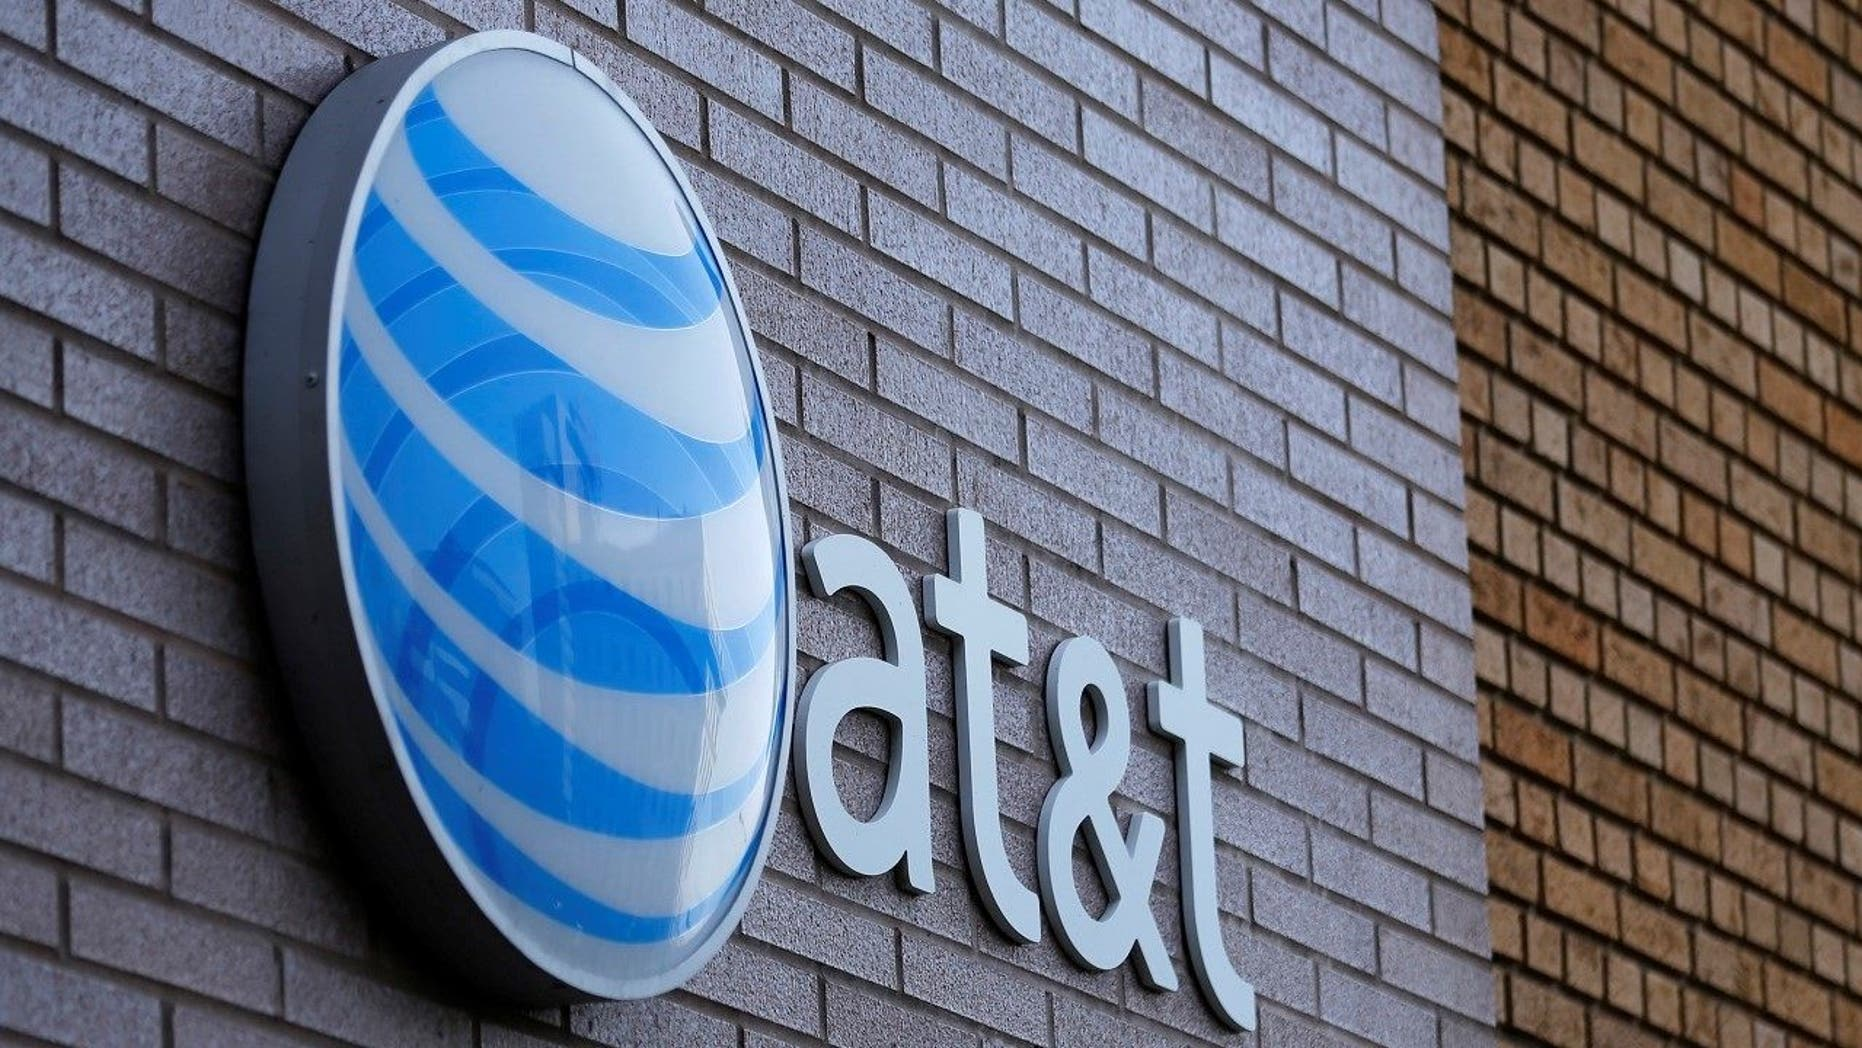 File photo: An AT&T sign is shown on a building in downtown San Diego, California March 18, 2014. REUTERS/Mike Blake